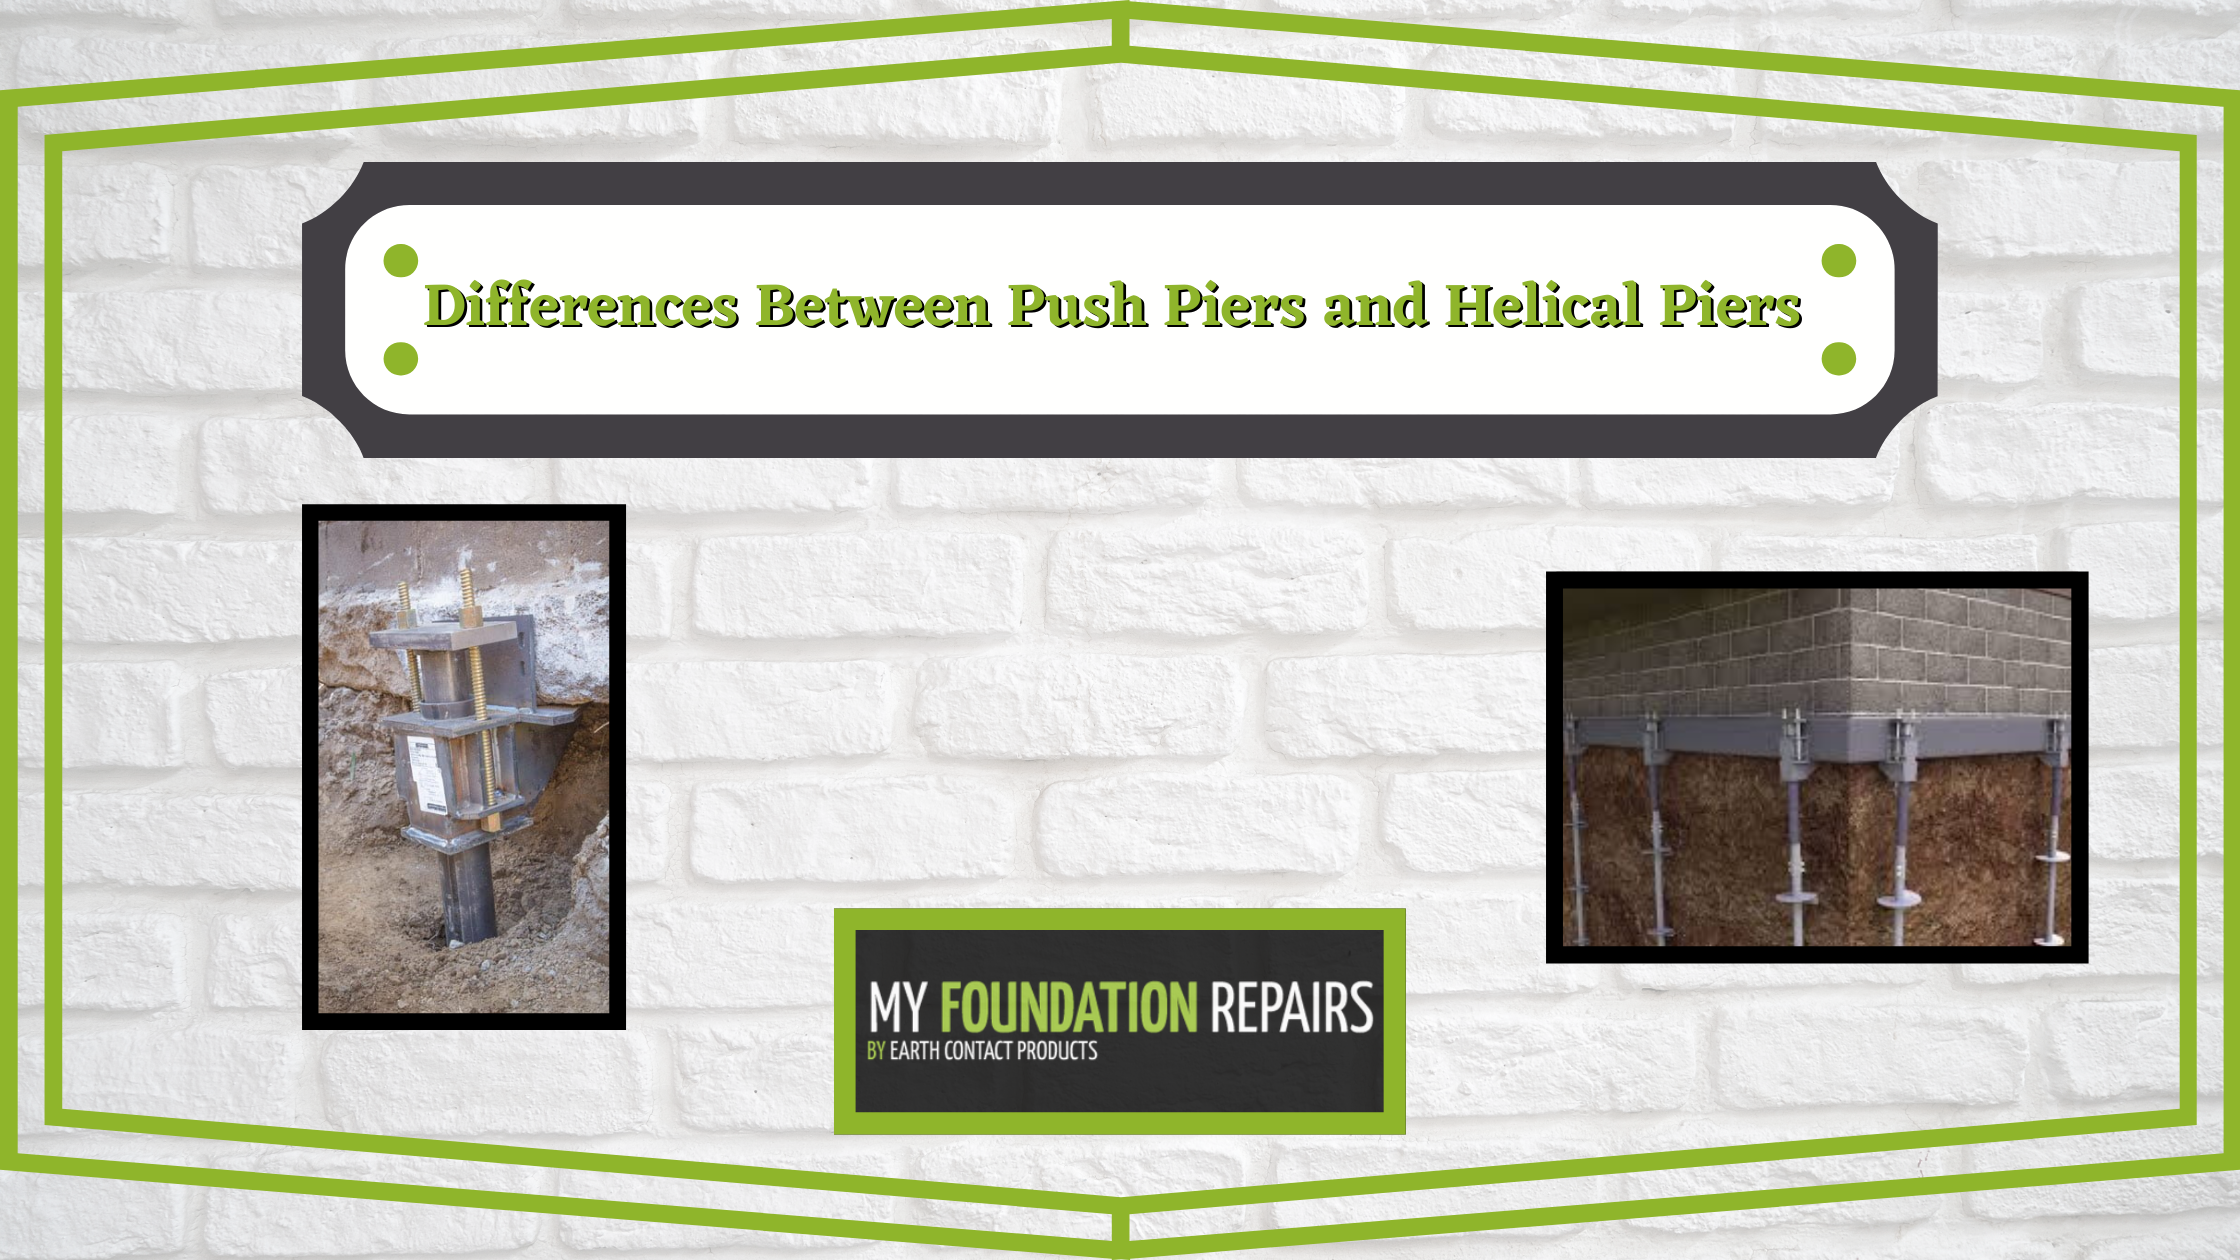 Differences Between Push Piers and Helical Piers